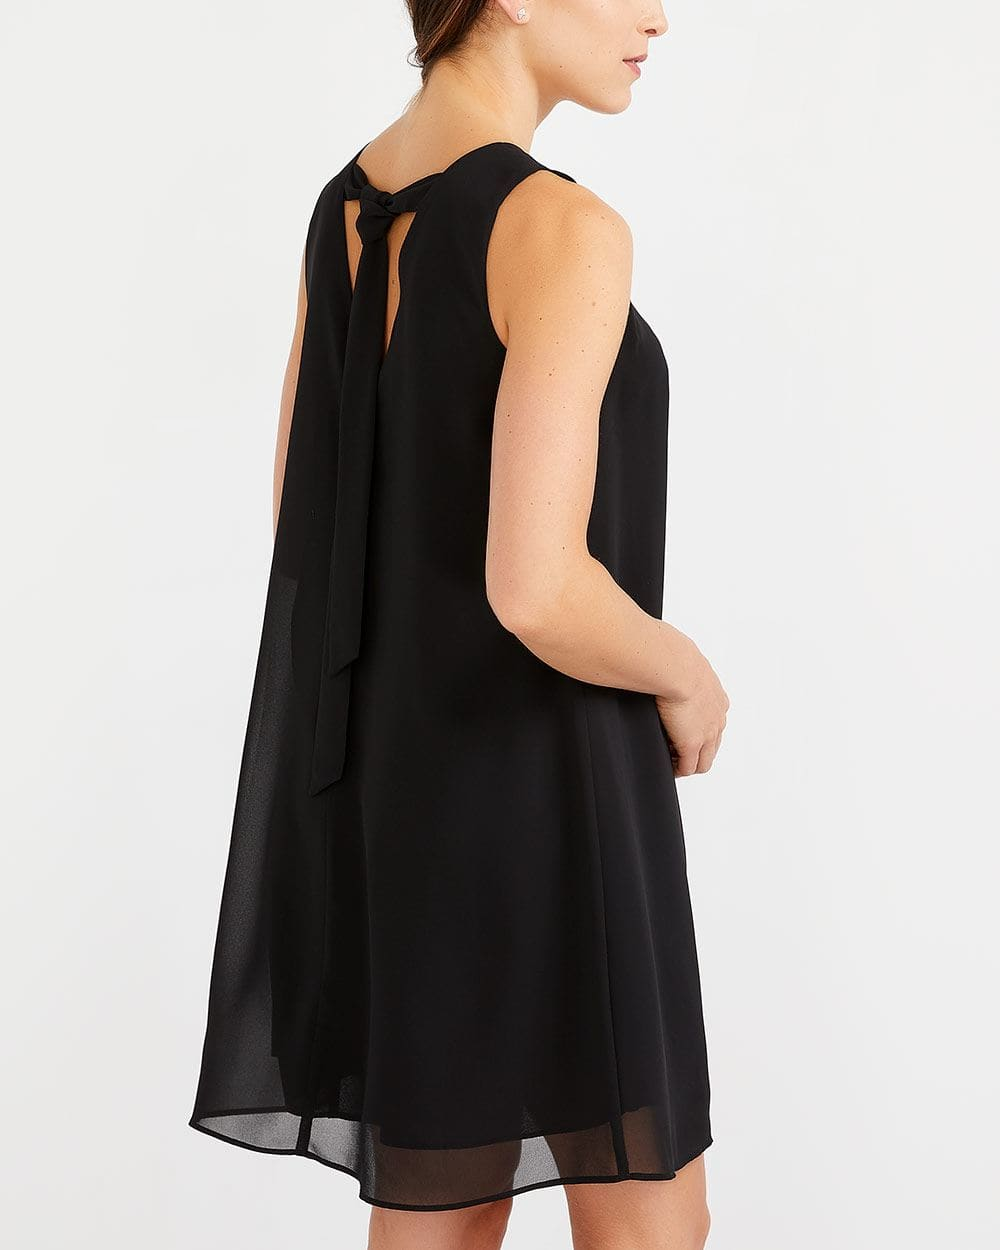 Sleeveless Back Tie Dress